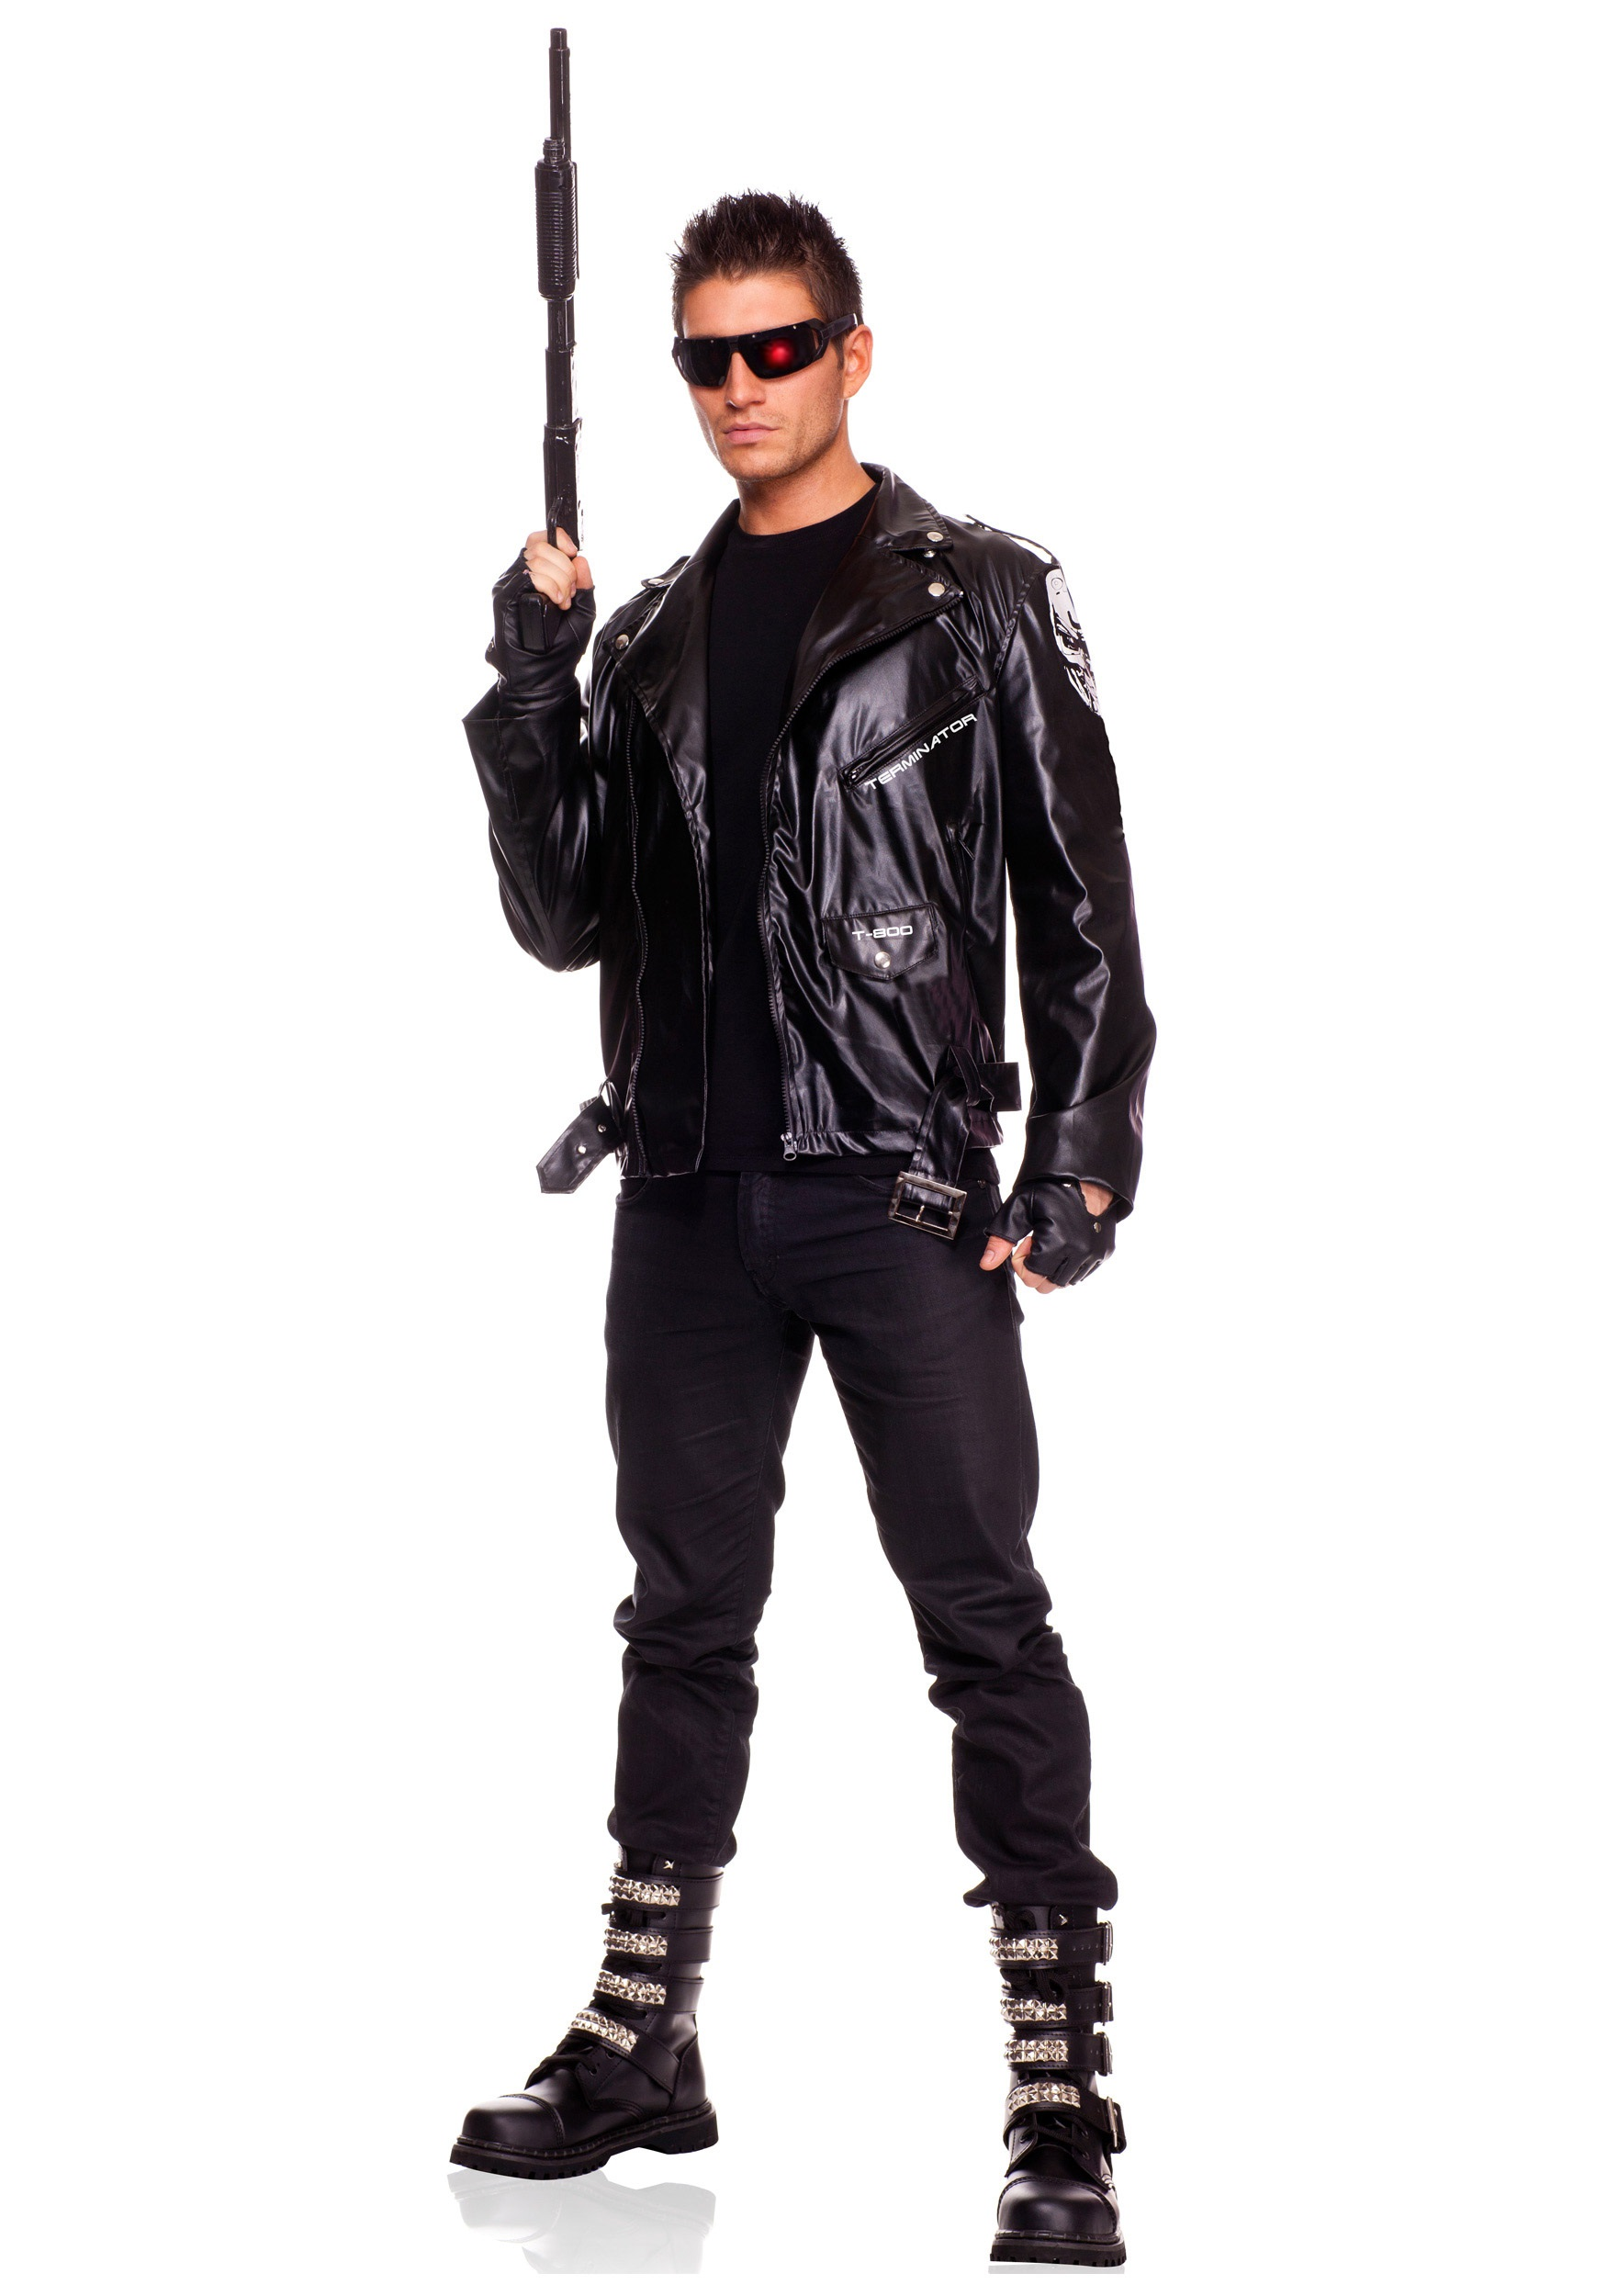 sc 1 st  Halloween Costumes : terminator costume accessories  - Germanpascual.Com